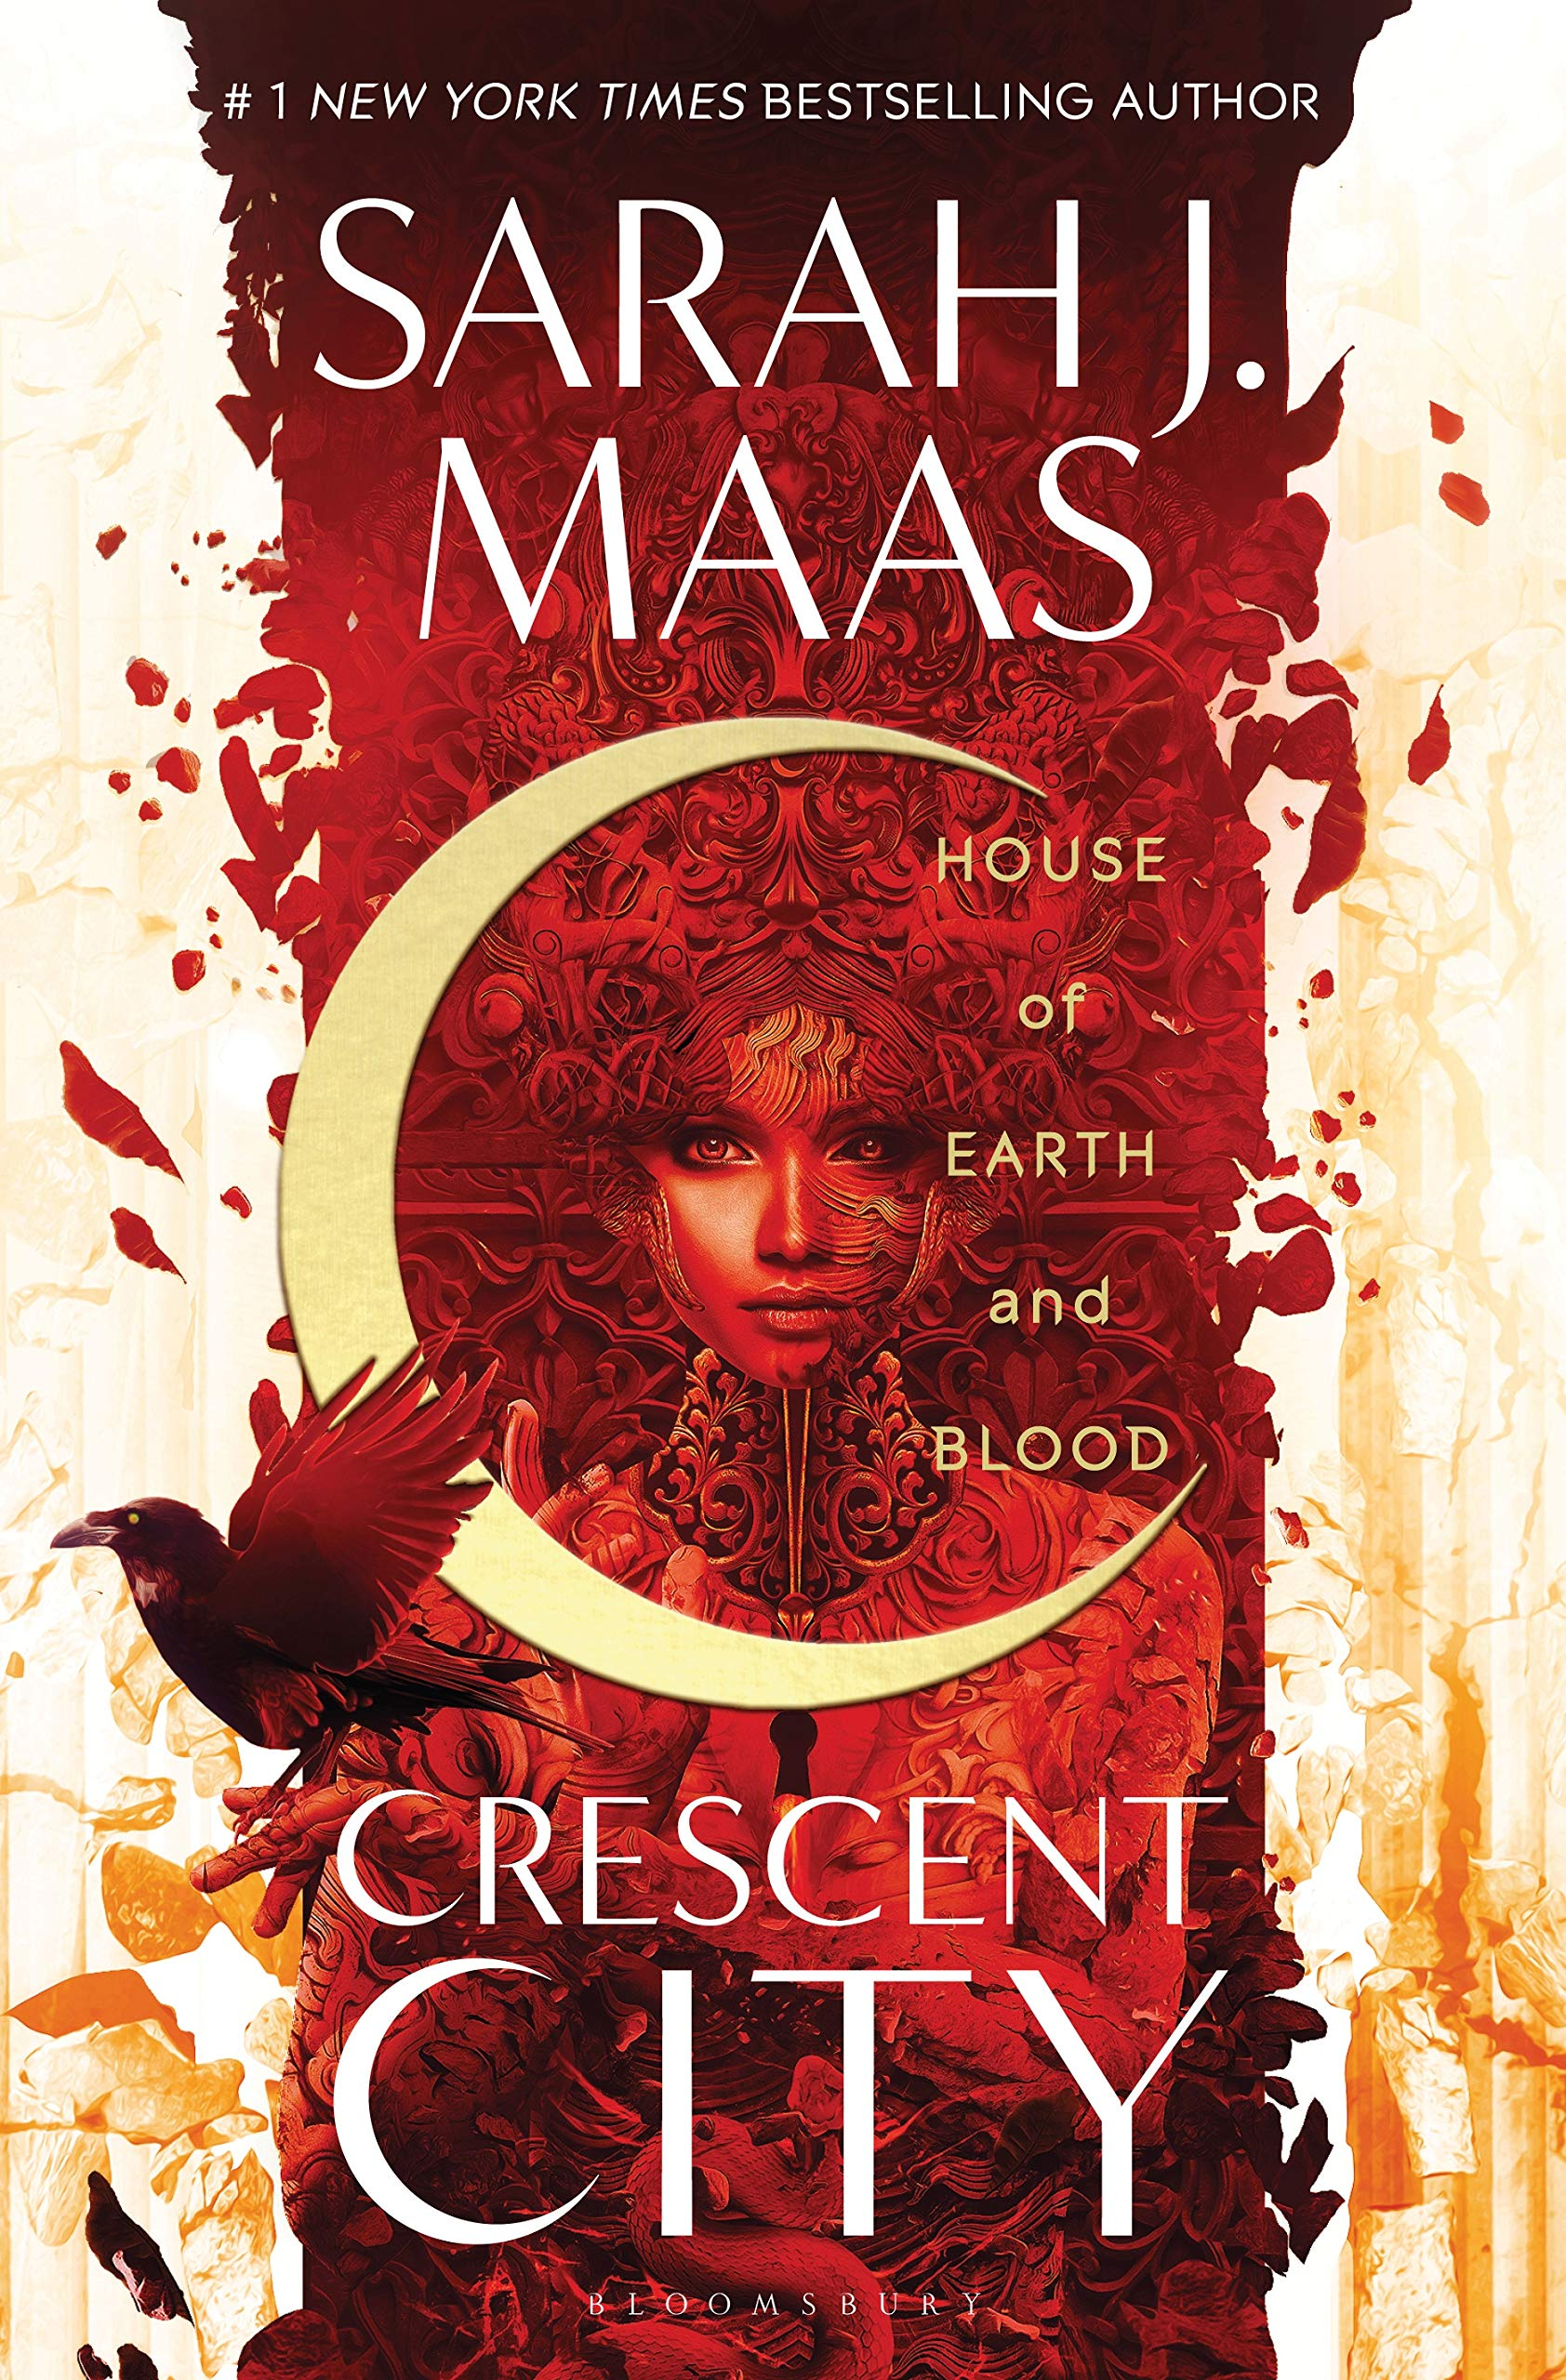 House of Earth and Blood (Crescent City): Amazon.co.uk: Maas ...